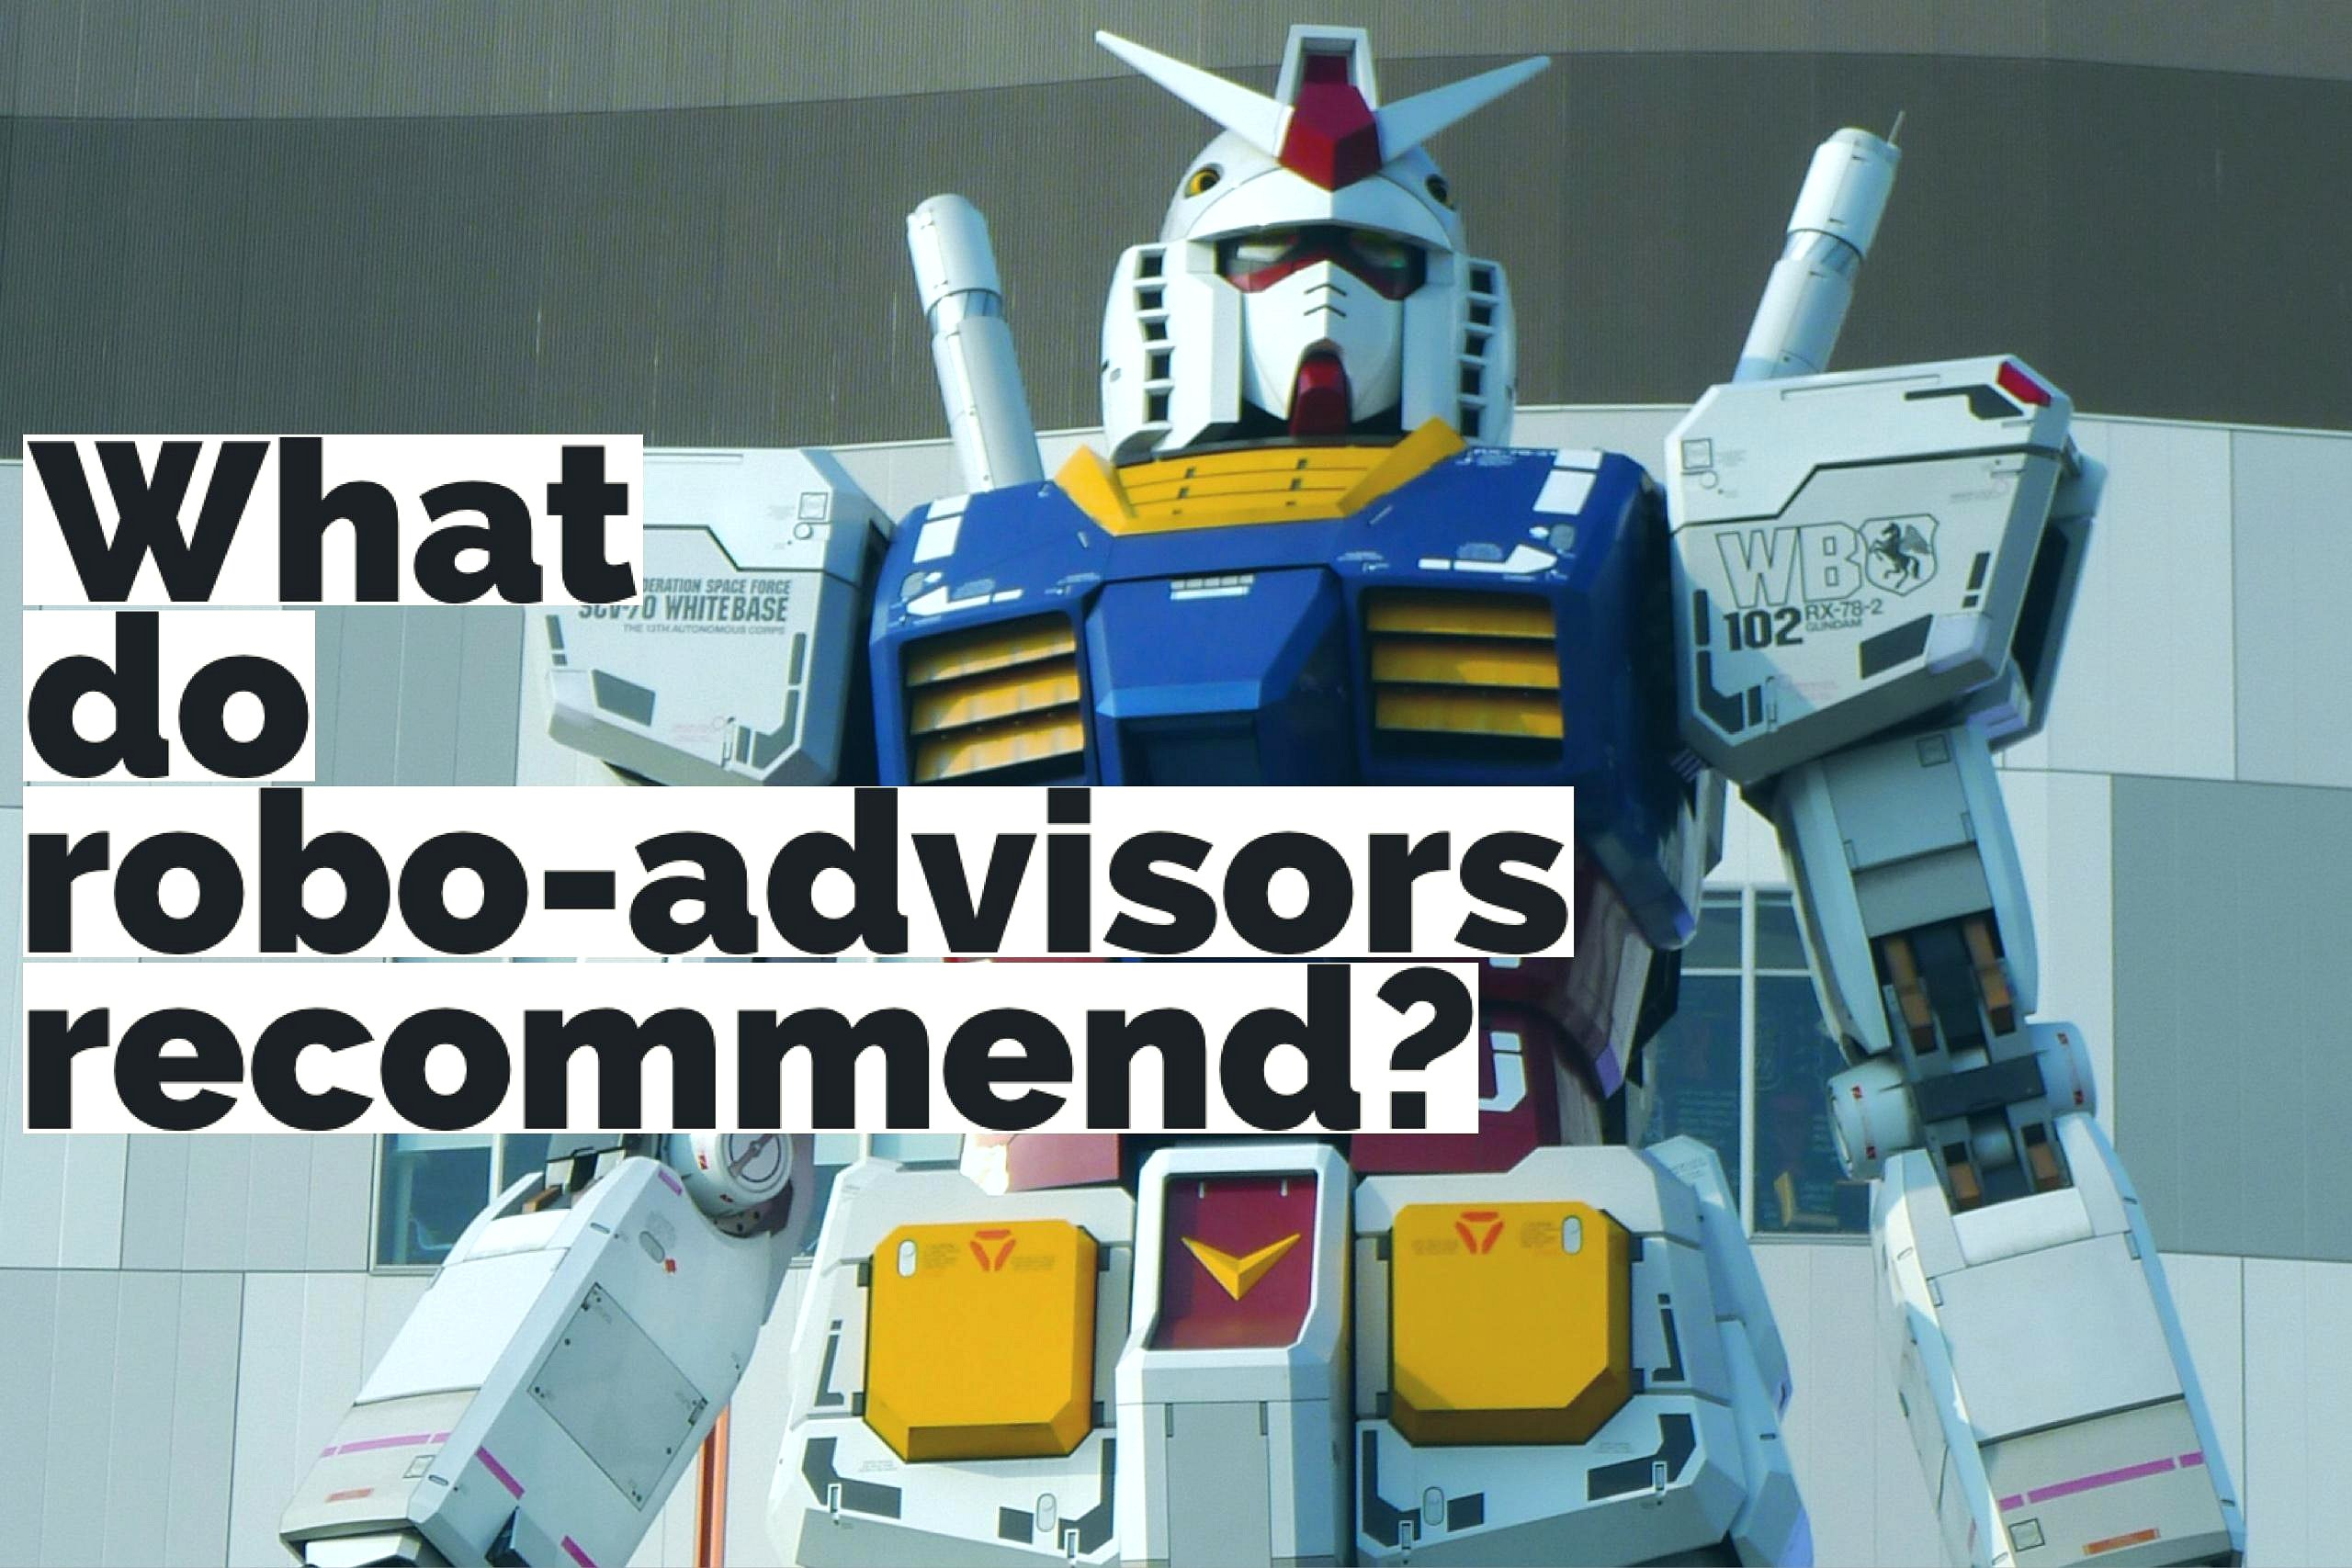 What Do Robot Advisors Recommend? Google image from https://staticseekingalpha.a.ssl.fastly.net/uploads/2016/6/9/18640452-14655085968197768_origin.jpeg